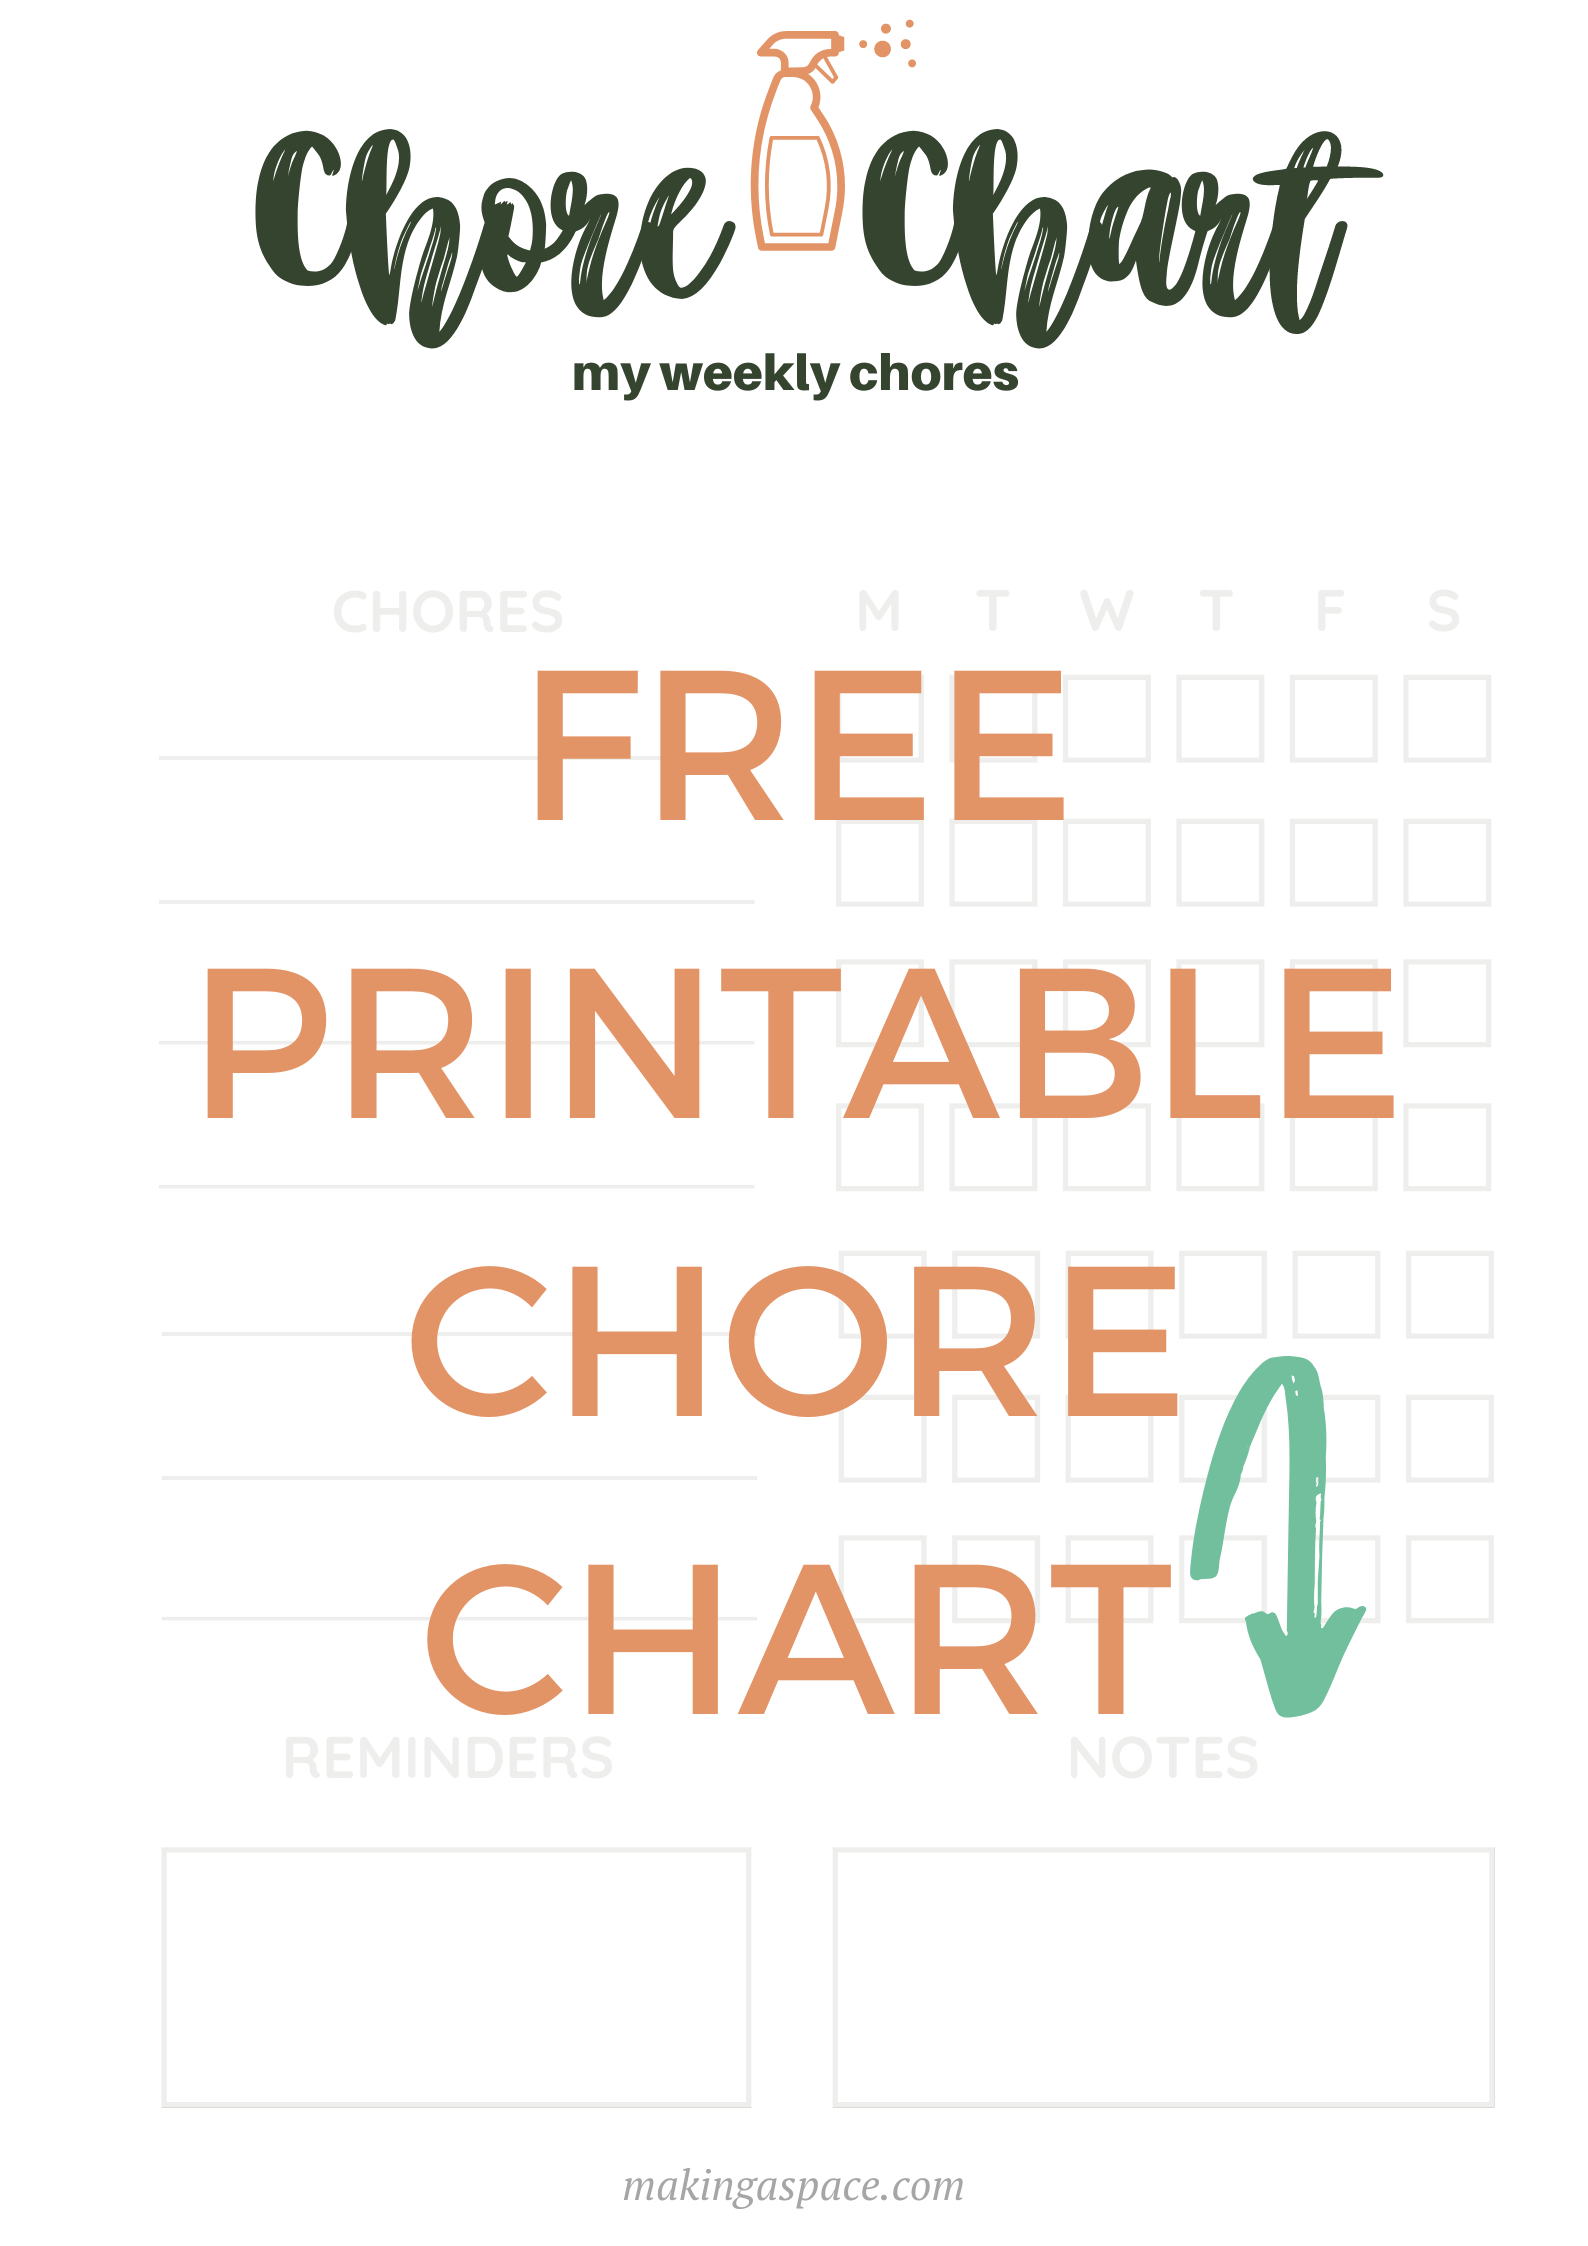 printable chore chart to help organize your space